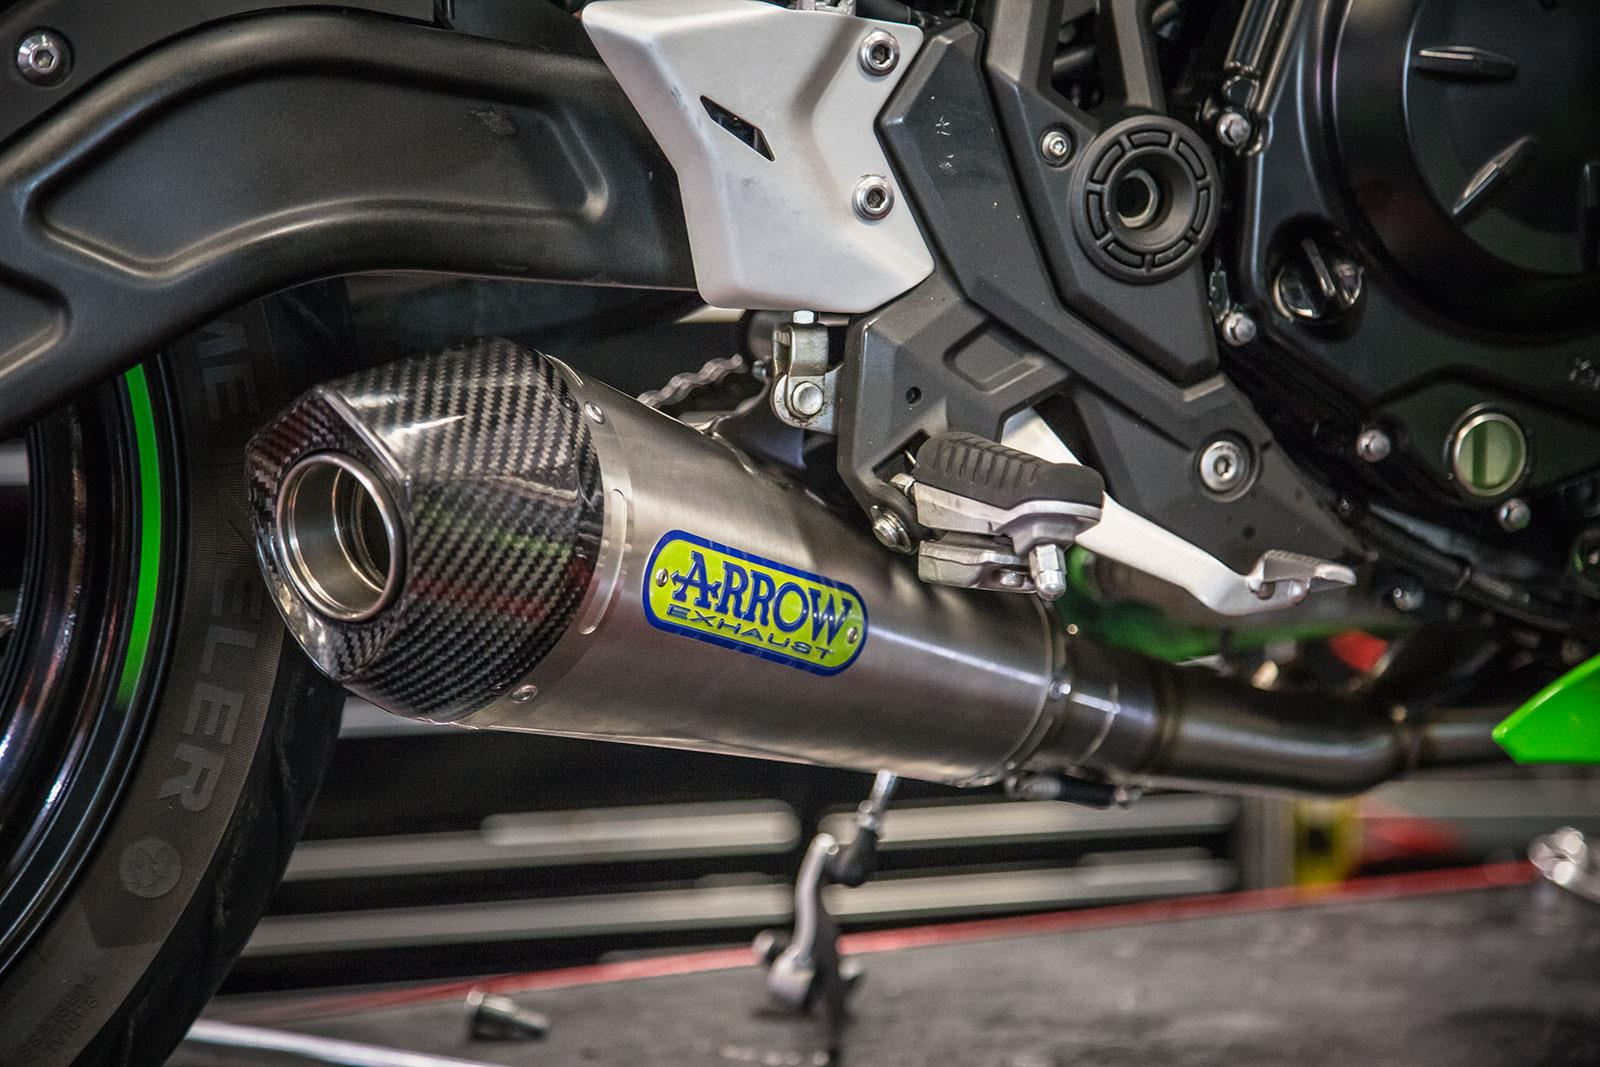 MCN Fleet: Exhausting stuff for the Ninja 650